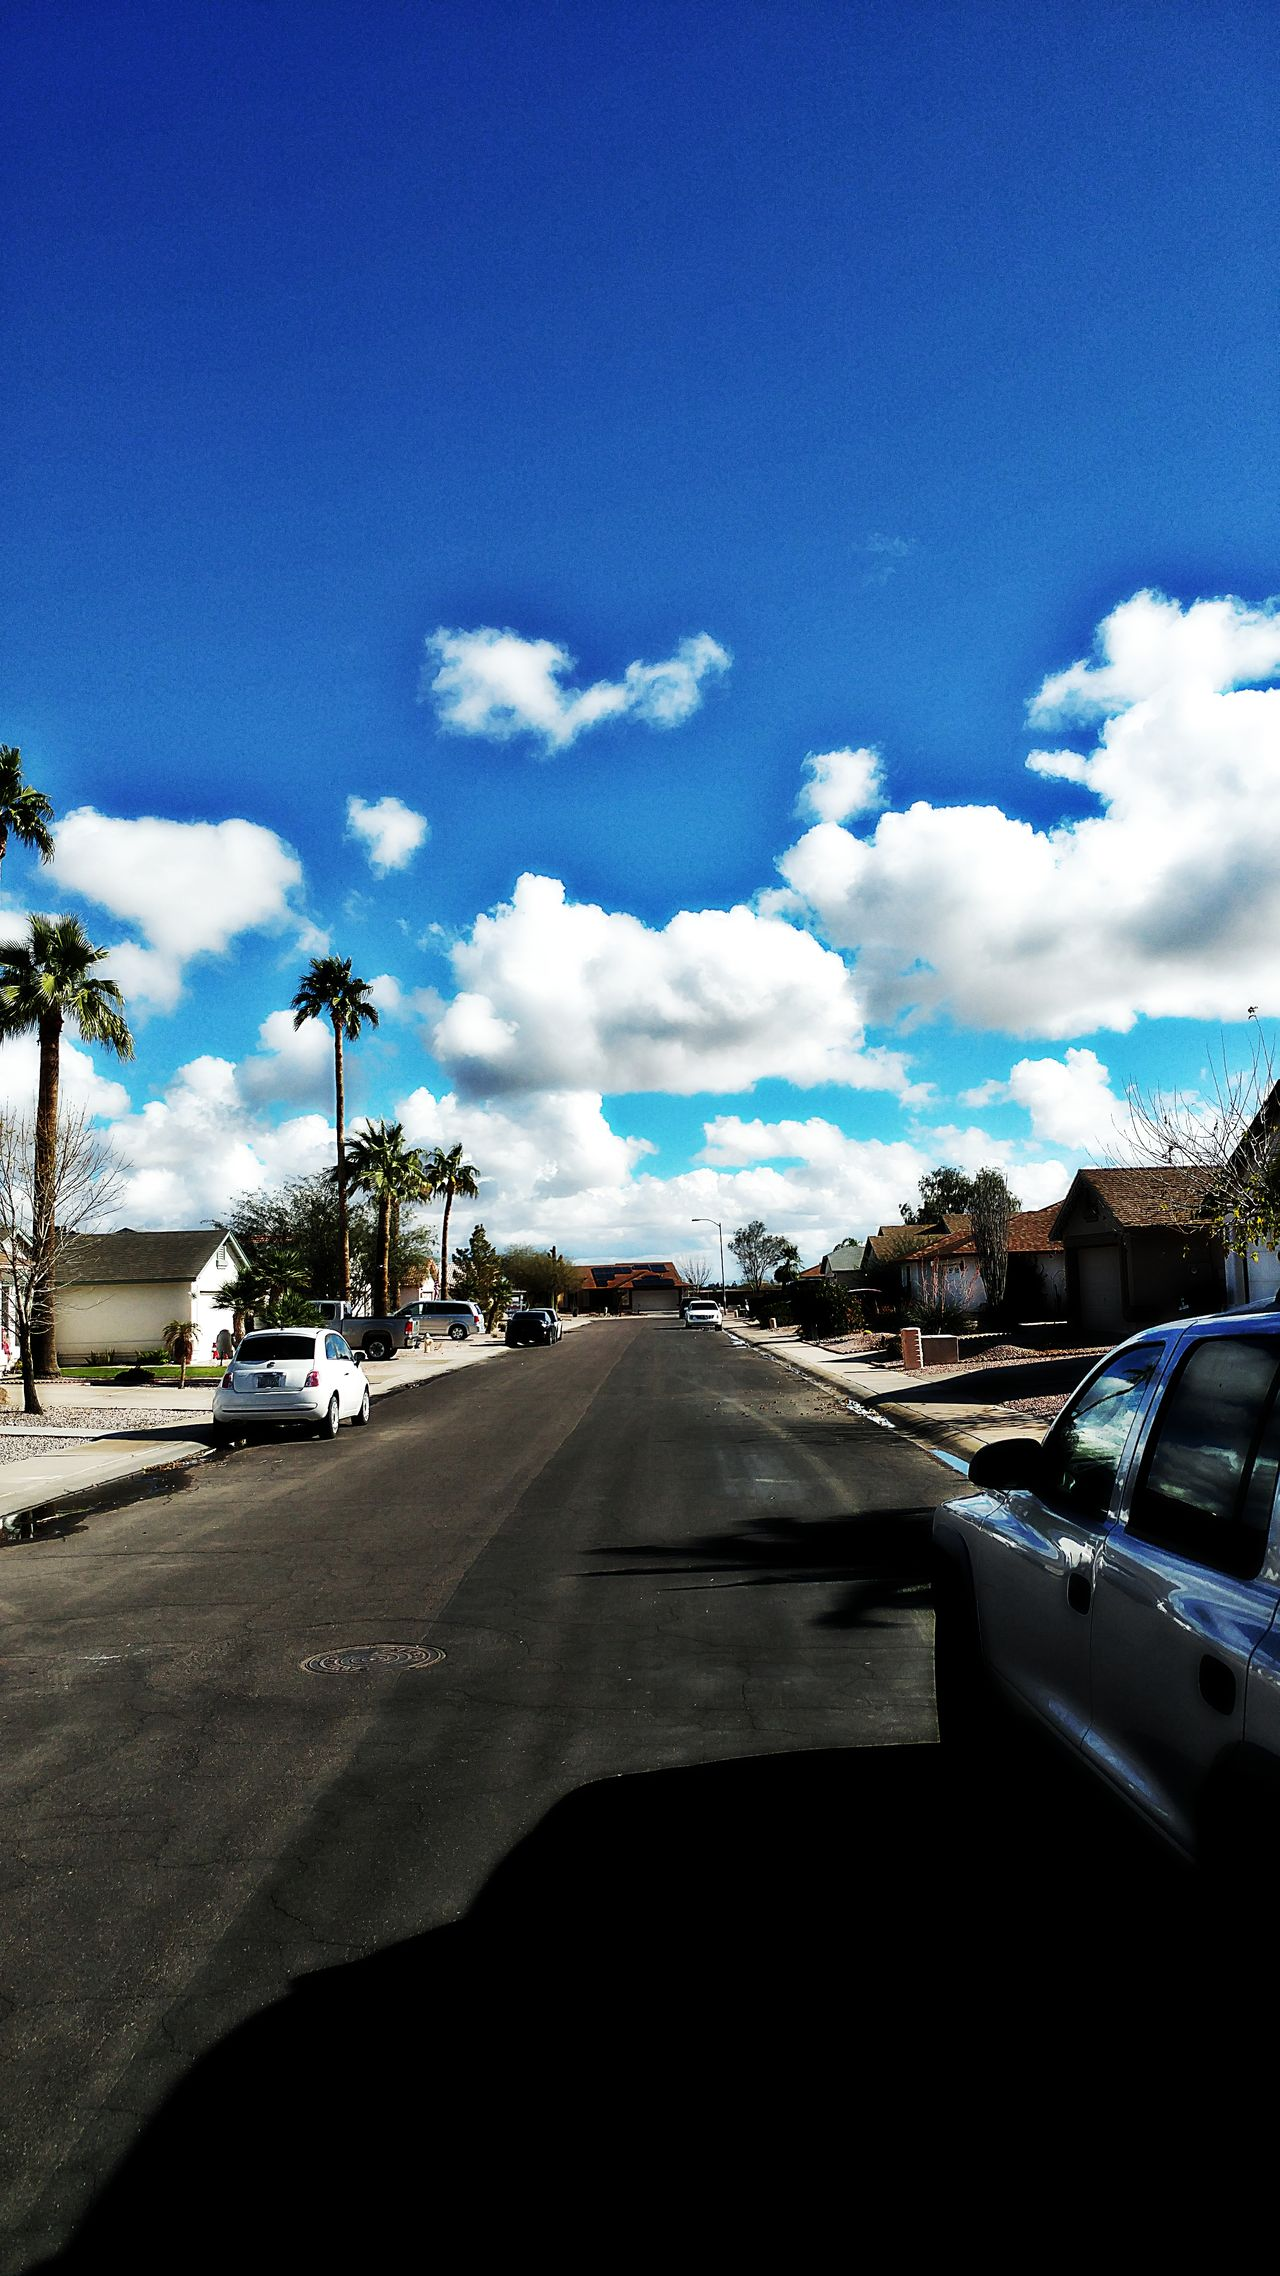 street Car Transportation Land Vehicle Tree Road Sky Mode Of Transport Blue Street The Way Forward Car Interior Cloud - Sky Travel Day Windshield No People Outdoors Nature Casa Grande Az